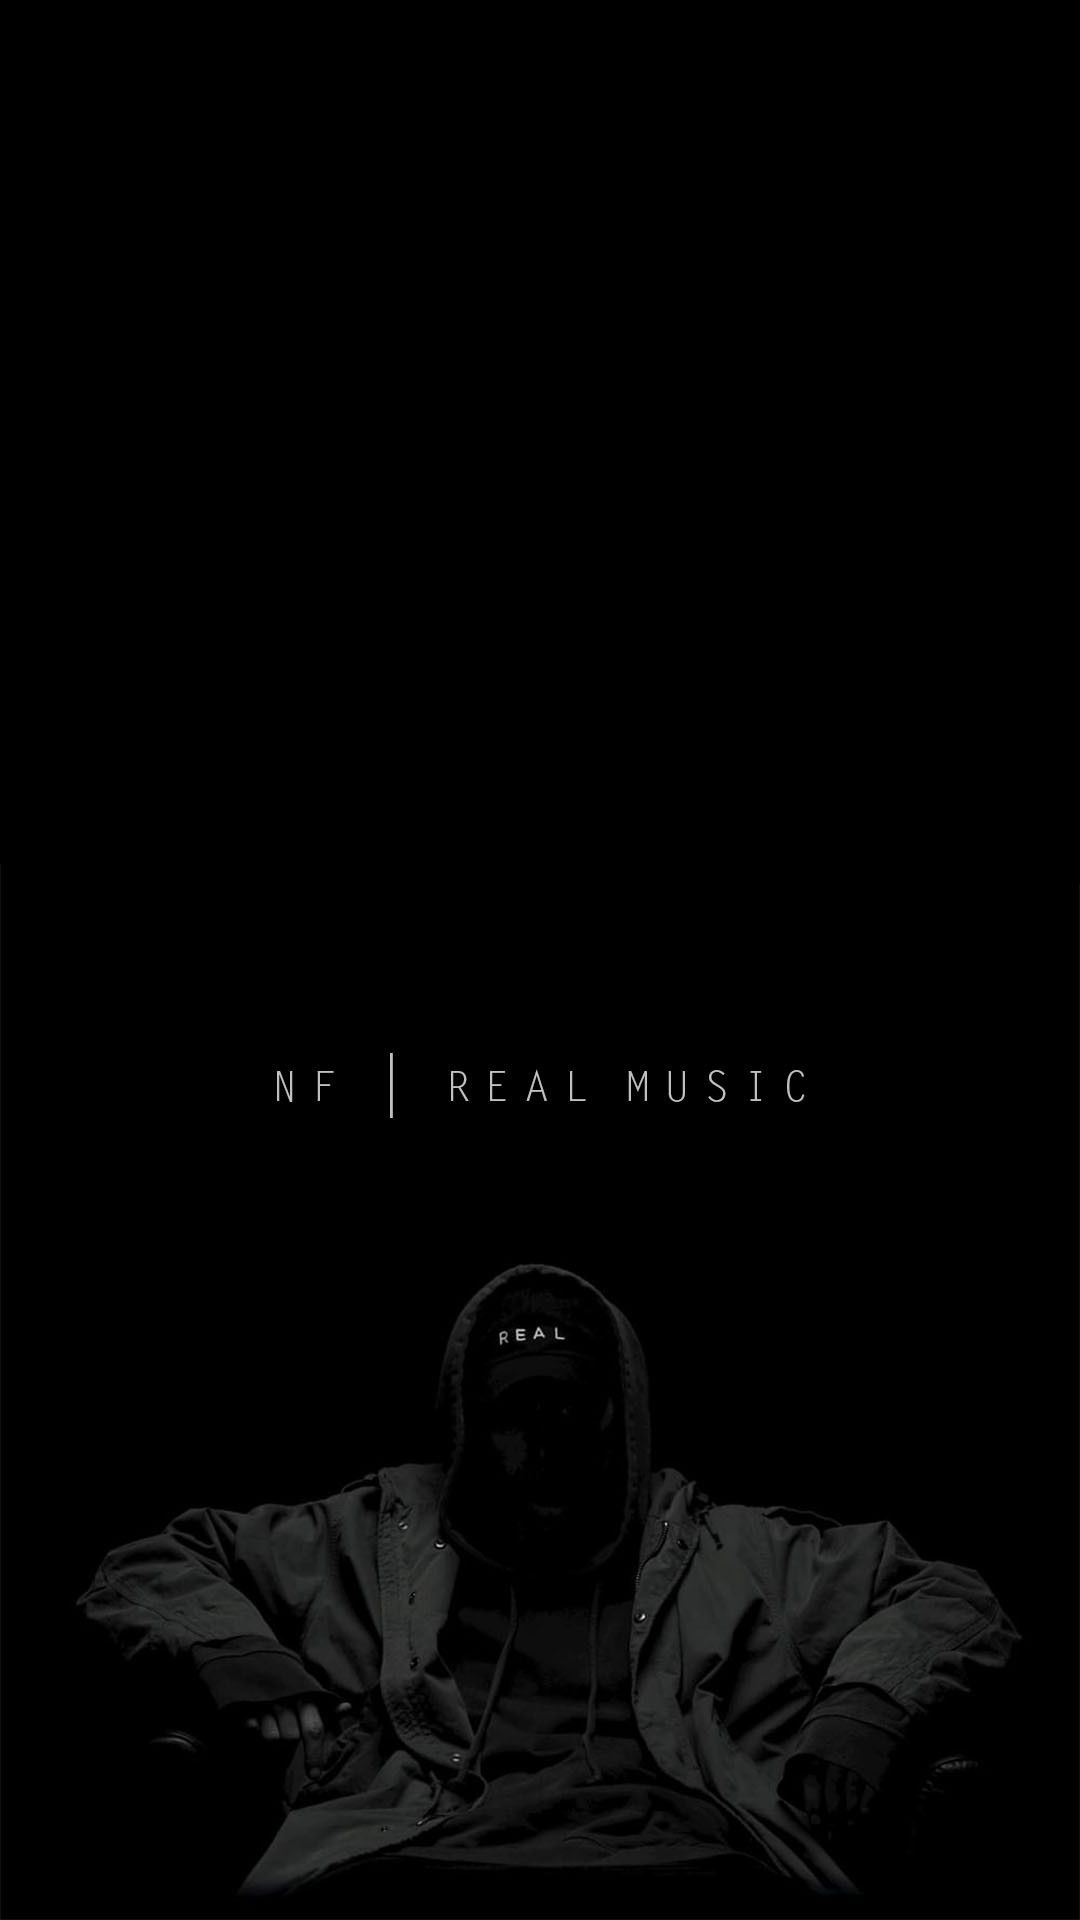 Nf Real Music Nf Quotes Nf Real Music Phone Wallpaper Images